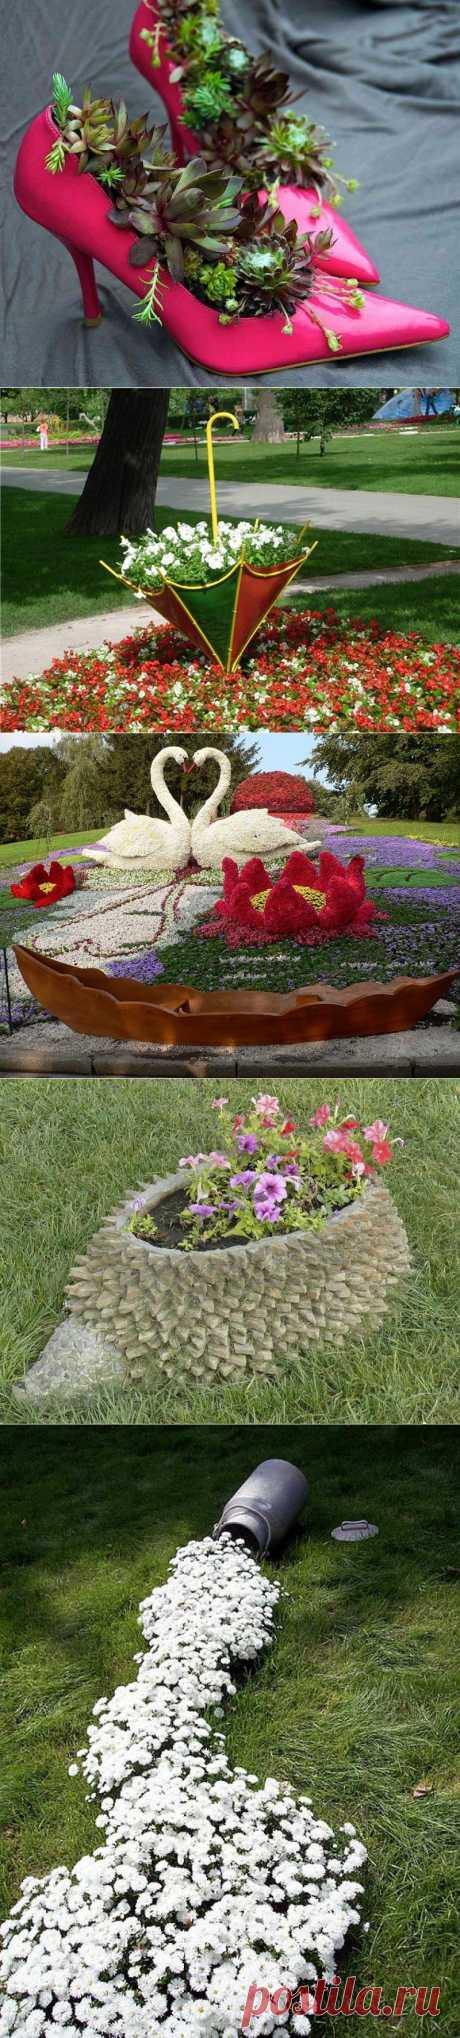 The most unusual ideas for garden beds. The integral element of landscaping are beds. But it is necessary to pay attention to unusual beds which became lately very popular among gardeners. Original beds are simple, beautiful, creative, but are at the same time capable to change any space.